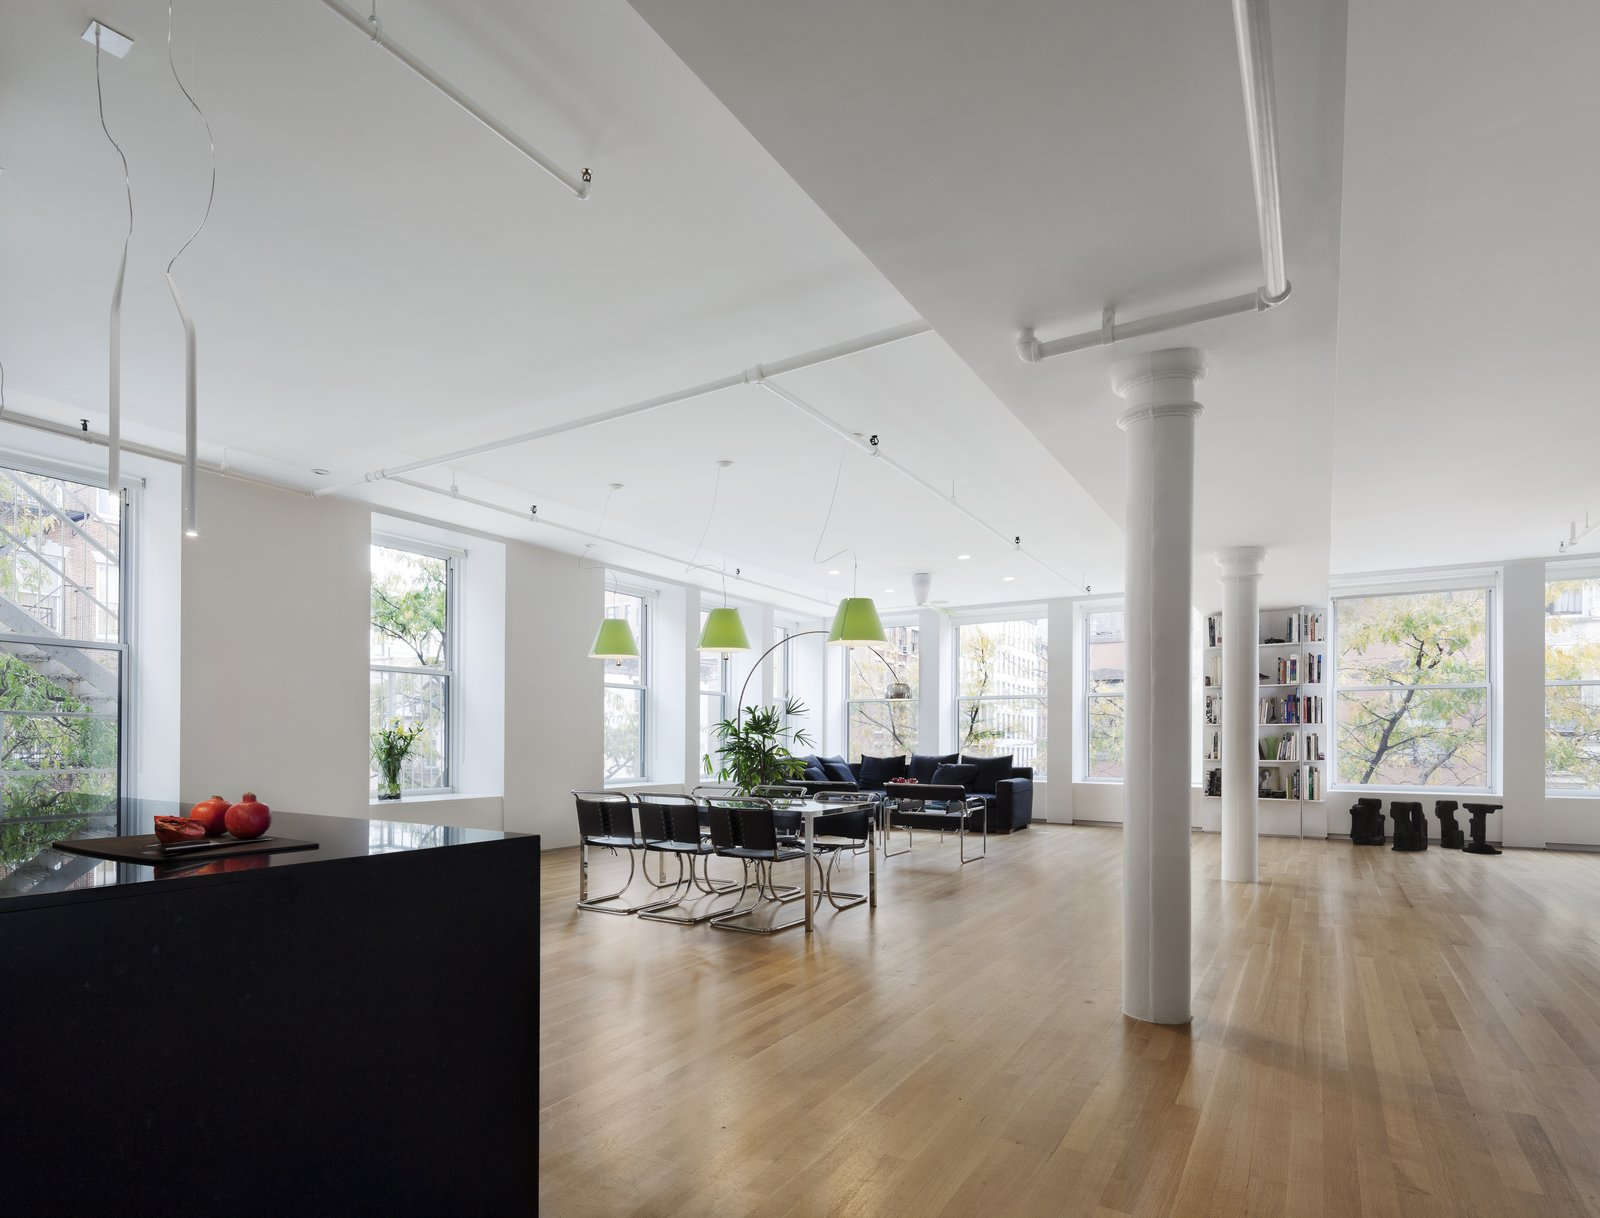 Dining Room, Pendant Lighting, Table, Recessed Lighting, Chair, and Light Hardwood Floor We replaced the windows and concealed the heating units to maximize the distribution of natural light.  Spring Street Loft by Verona Carpenter Architects